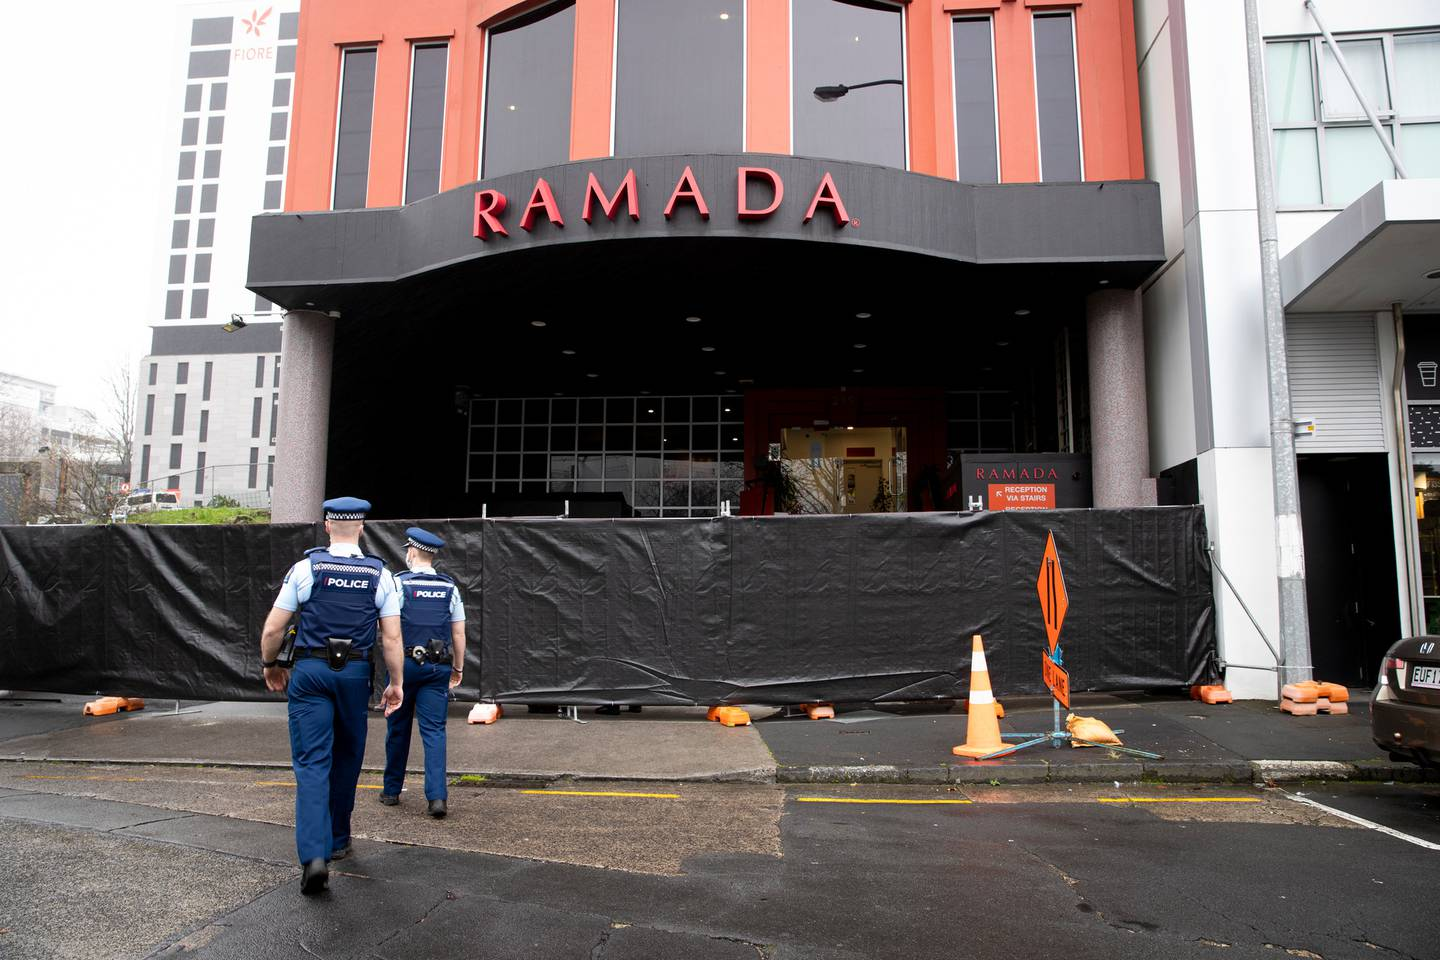 Four vans could be seen dropping off Australian deportees at the Ramada Suites by Wyndham...